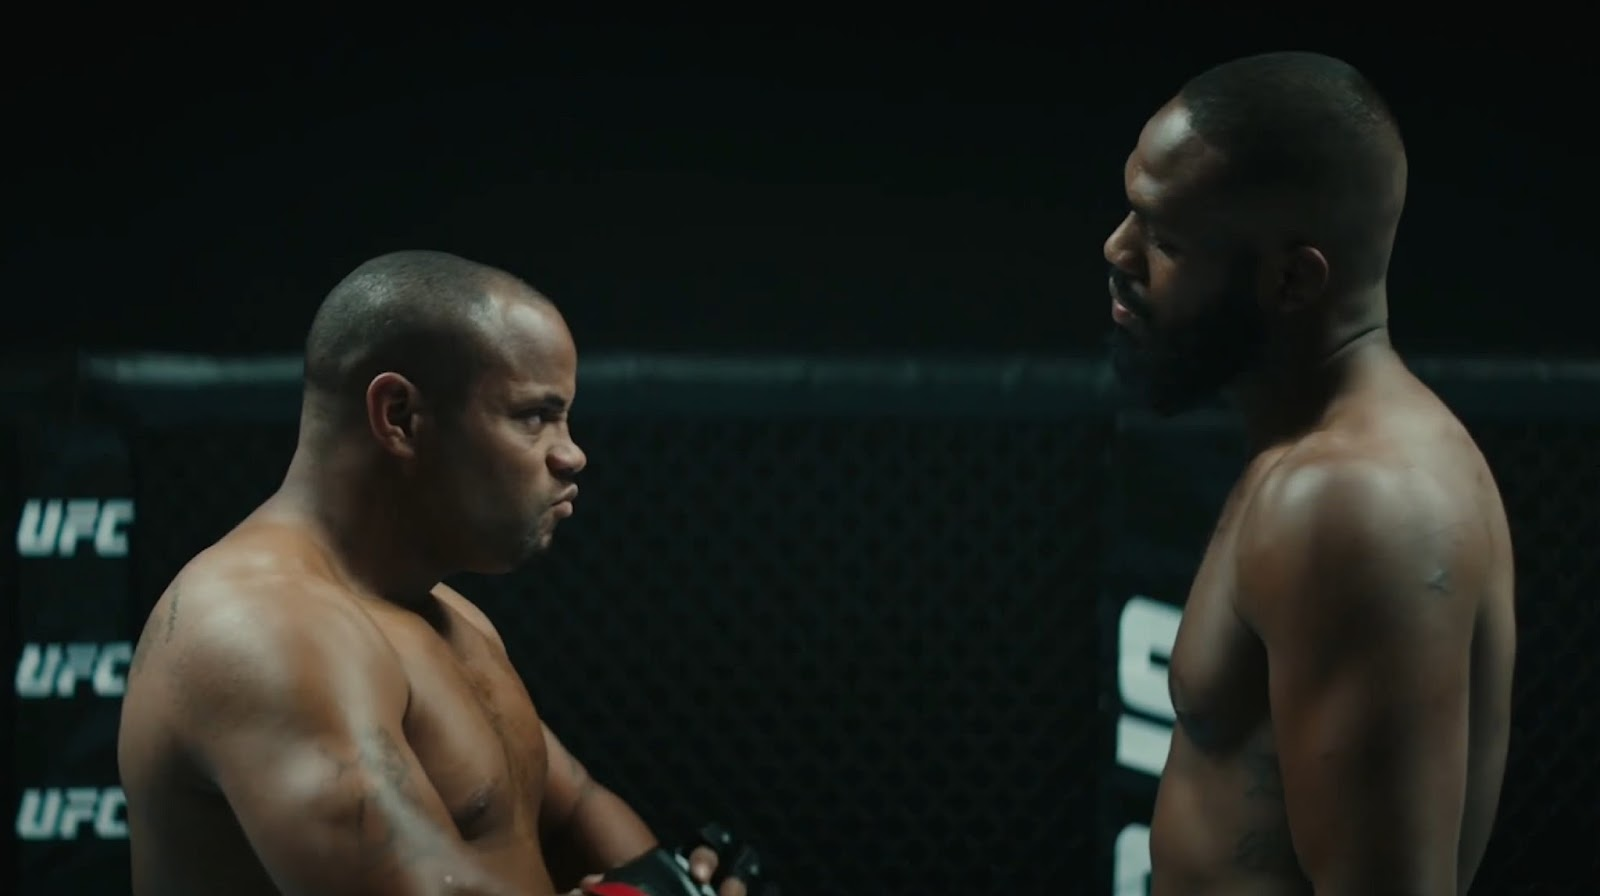 DANIEL CORMIER VS. JON JONES 4